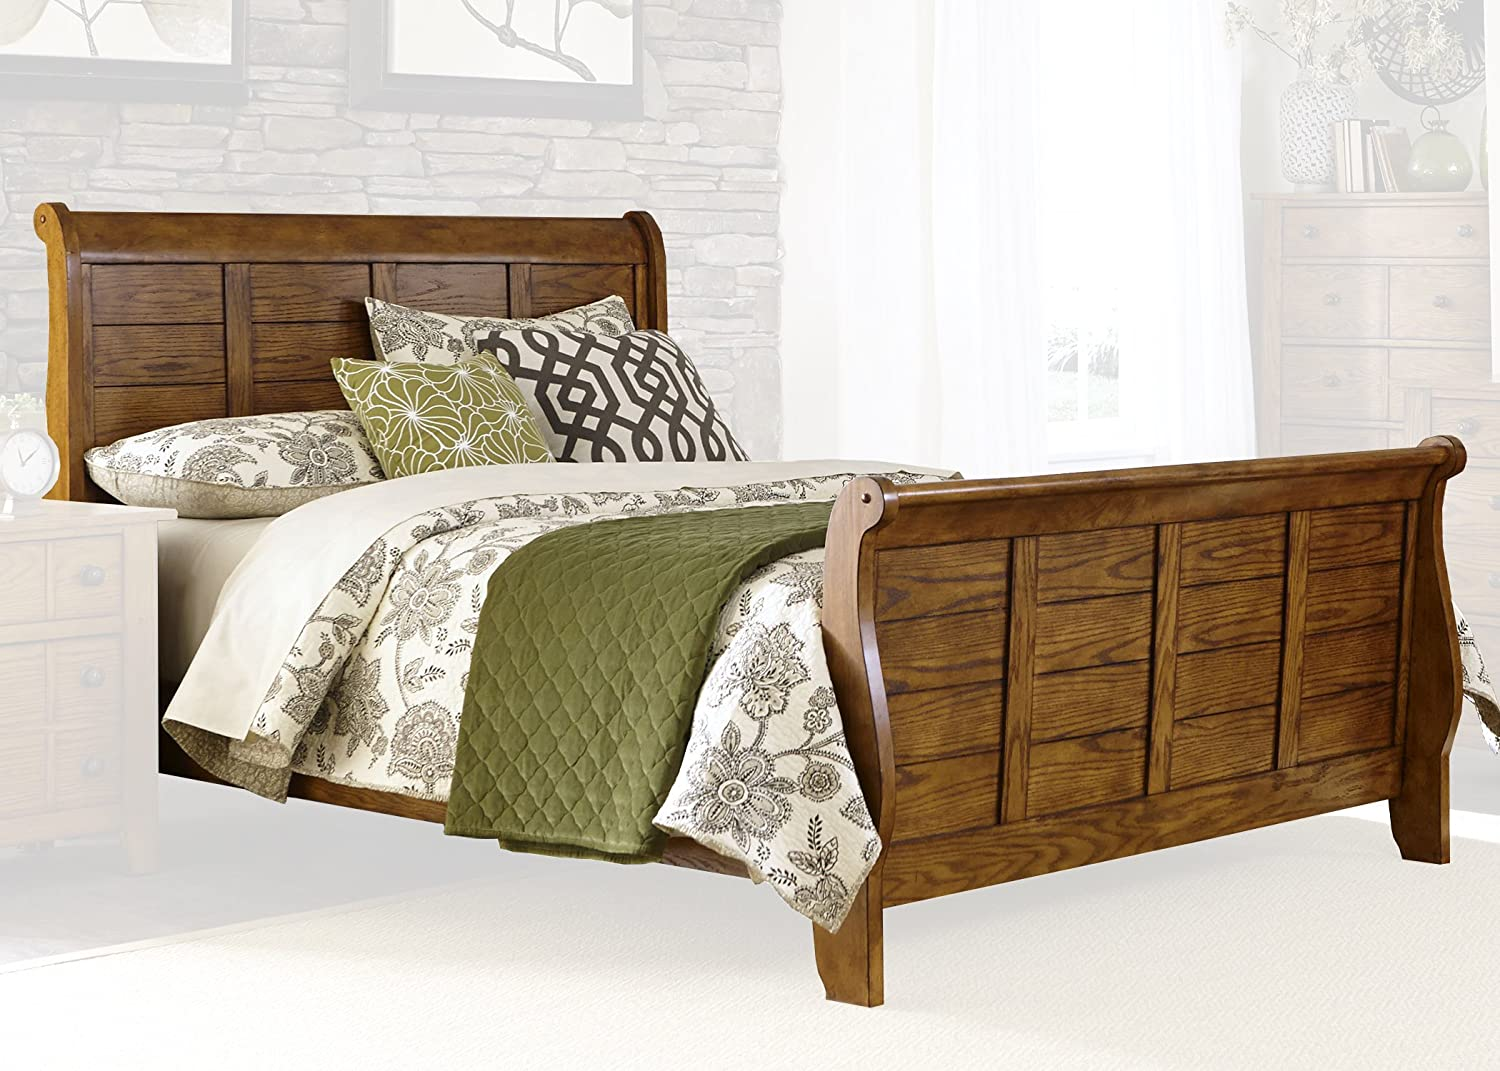 Baby bed olx - Amazon Com Liberty Furniture 175 Br Qsl Grandpa S Cabin Sleigh Bed Queen Aged Oak Kitchen Dining